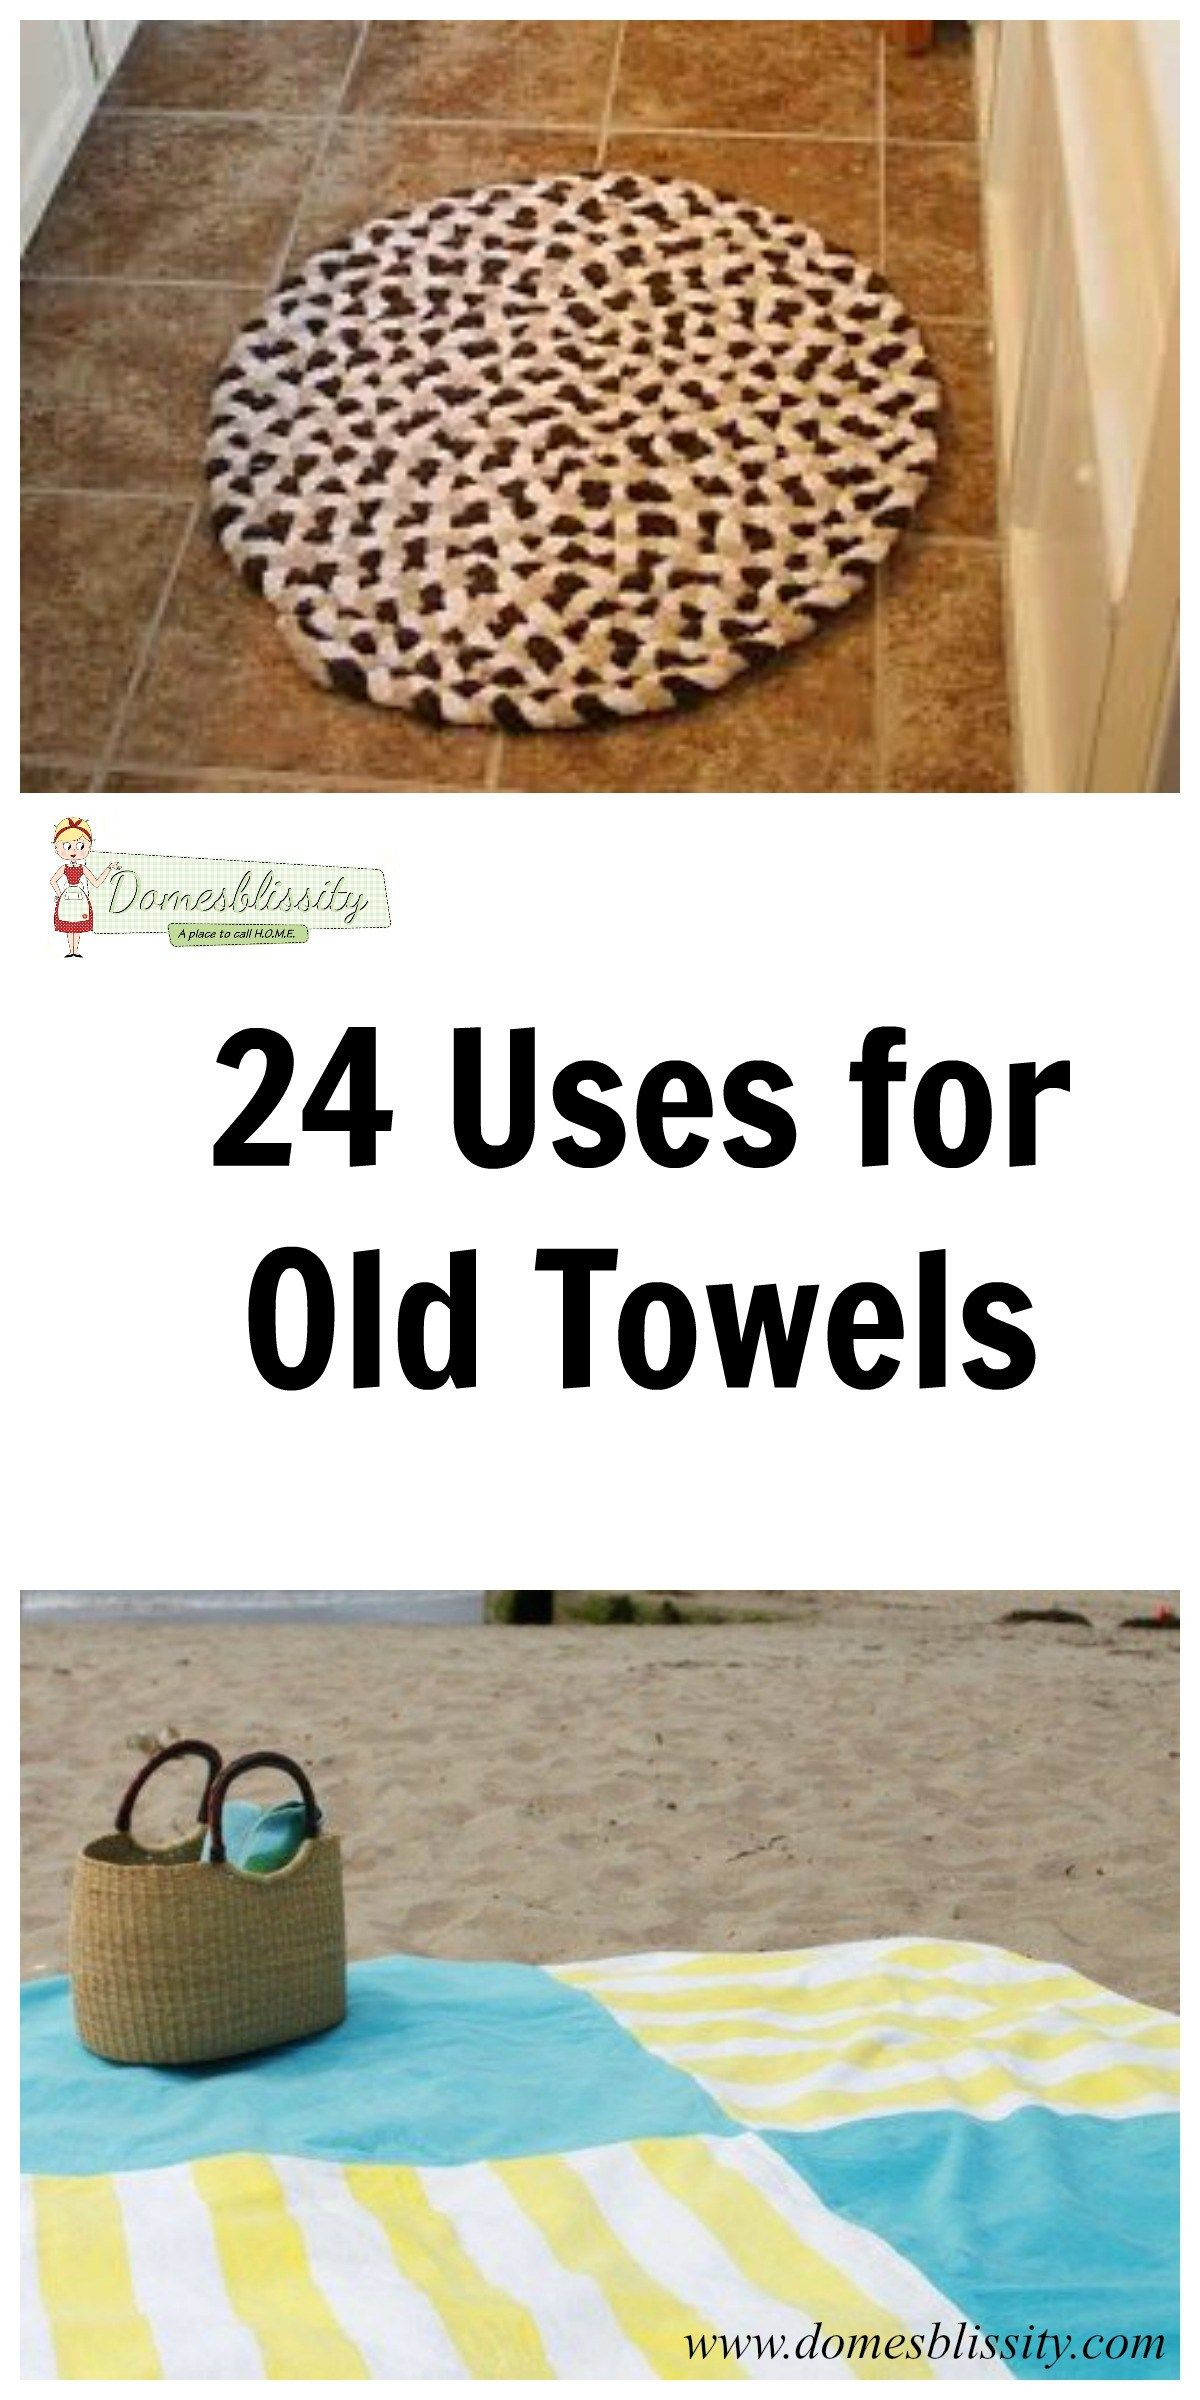 24 Uses For Old Towels With Images Old Towels Recycled Towels